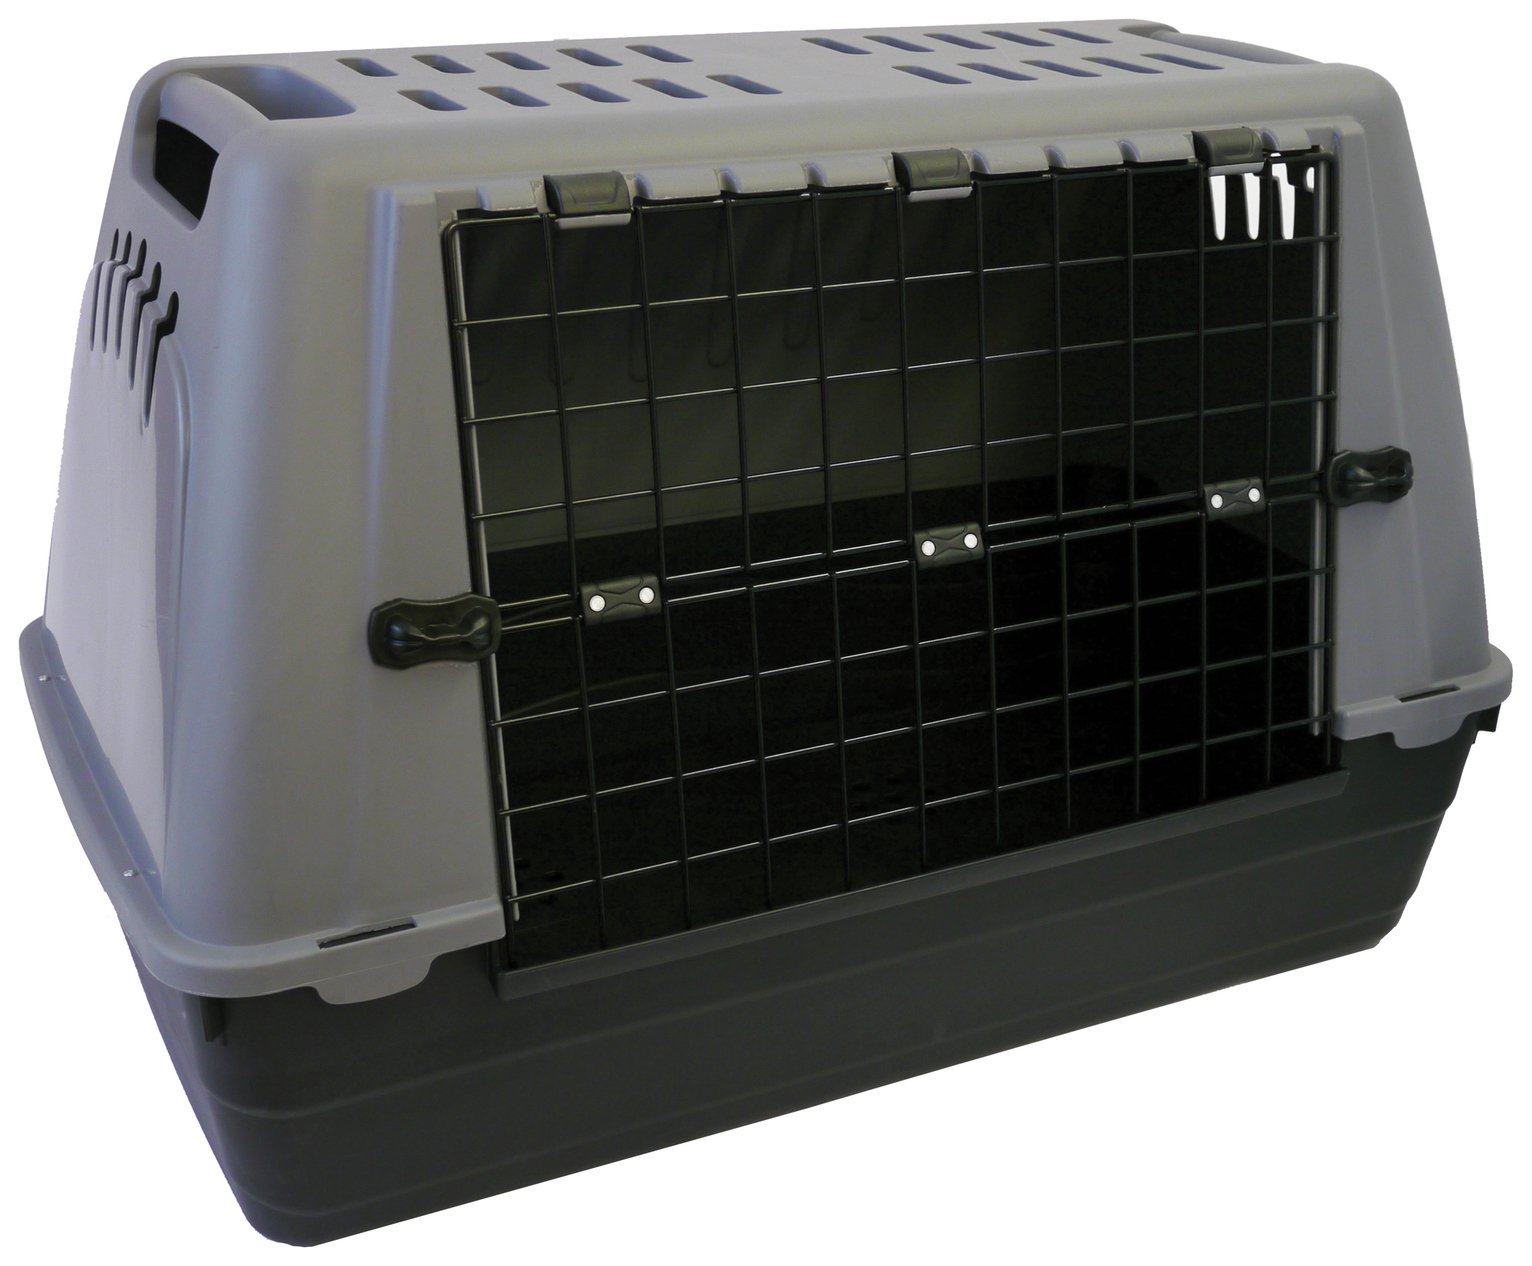 Image of Bracco - 80 Car Pet Carrier - Grey.